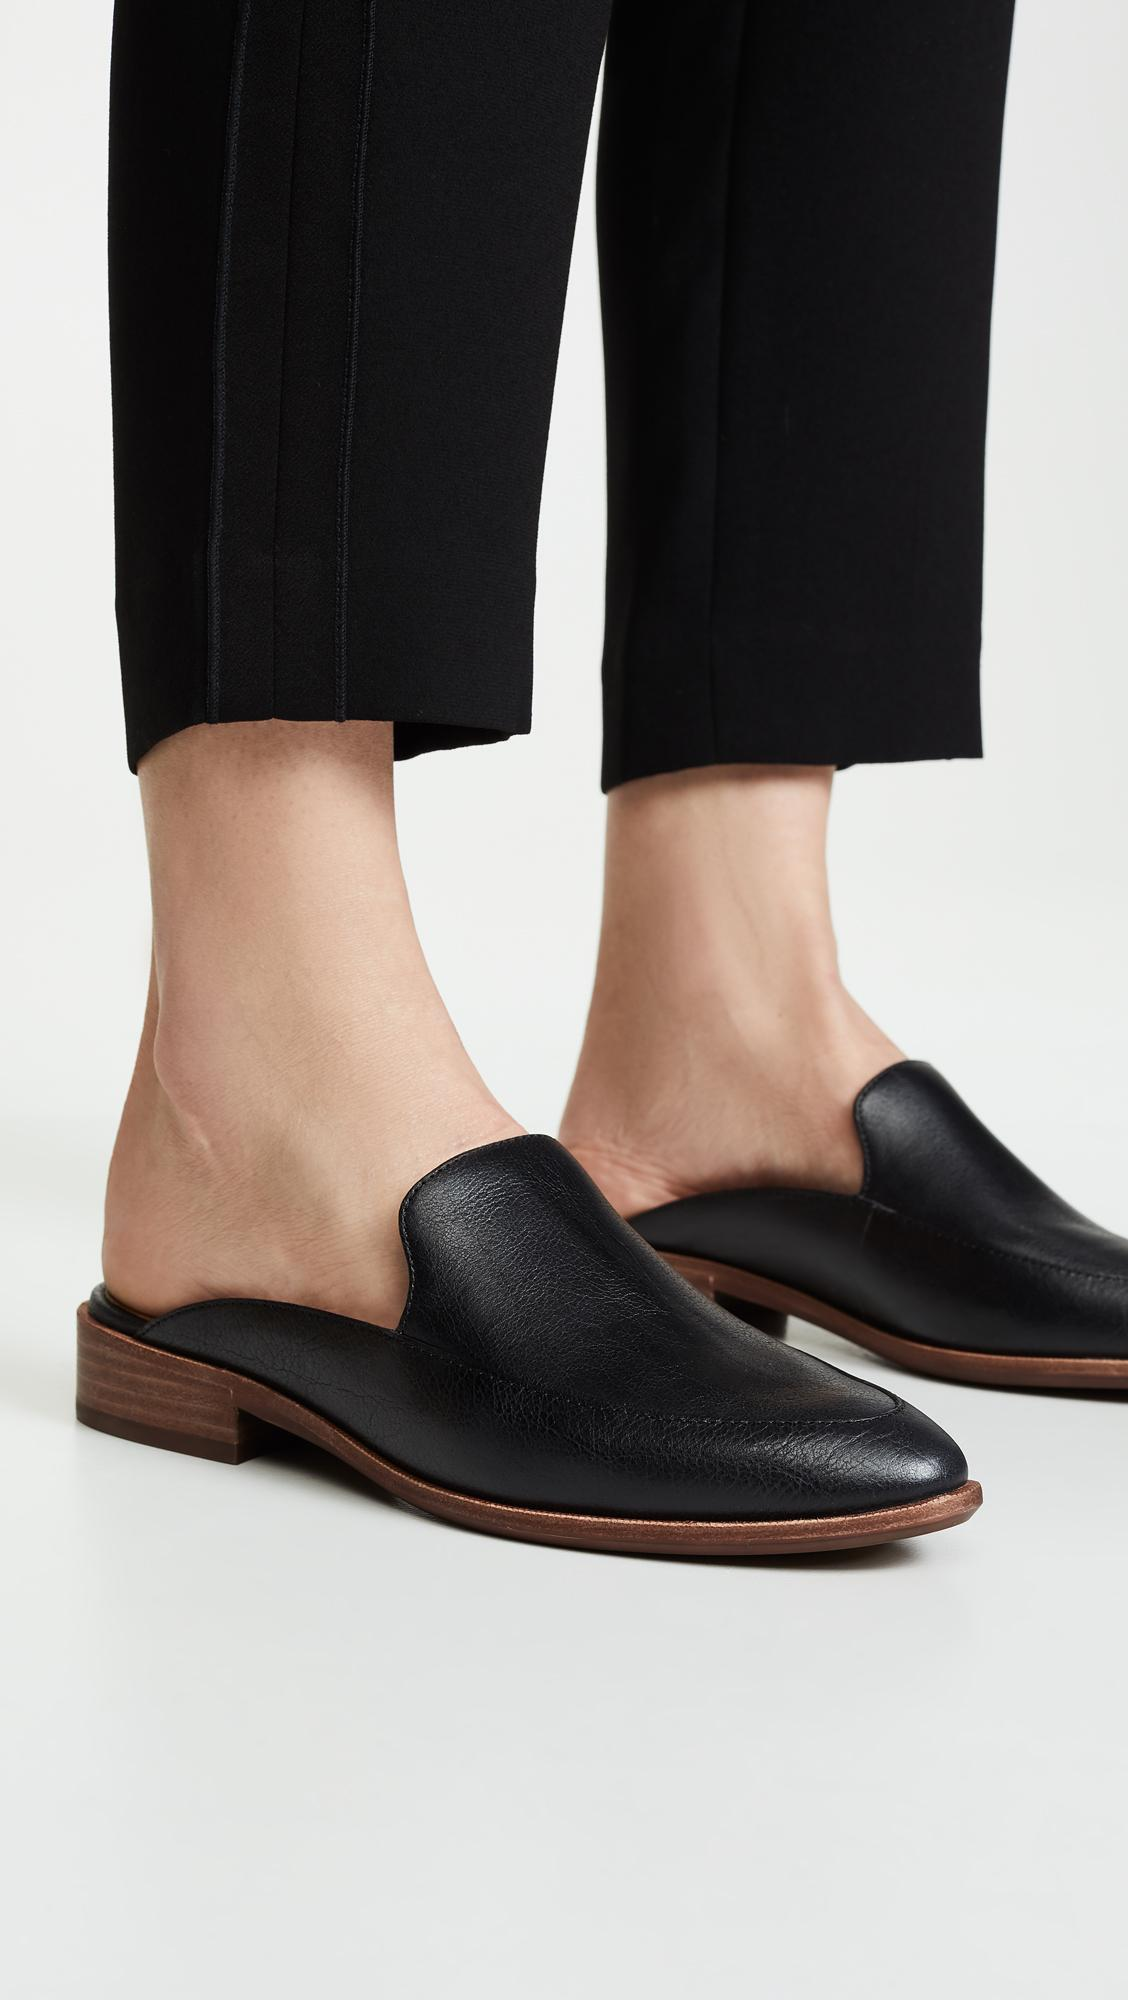 59cdfbcaf40 Madewell - Black The Frances Loafer Mule In Leather - Lyst. View fullscreen